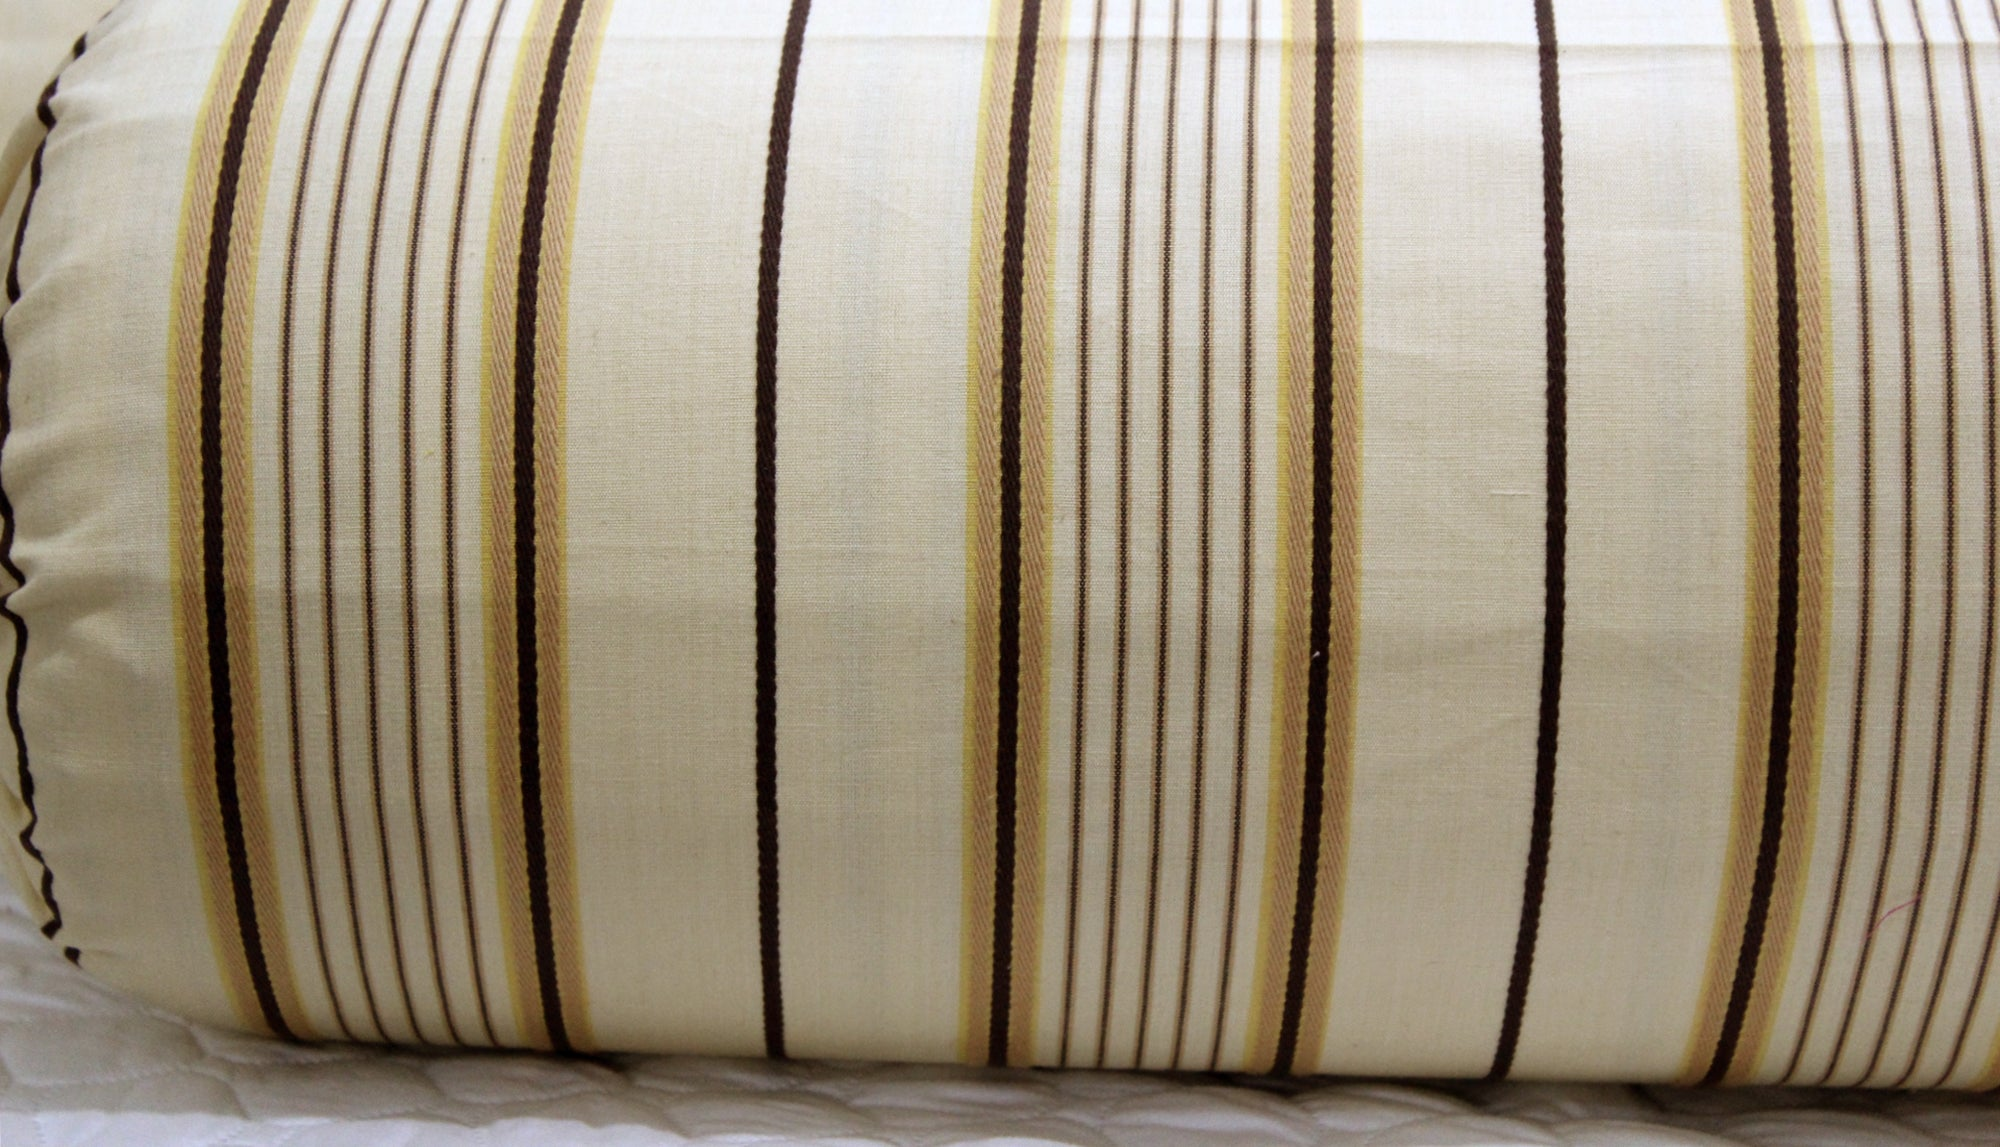 AURAVE Embossed Brown Stripes Cotton 2 Pcs Bolster Covers